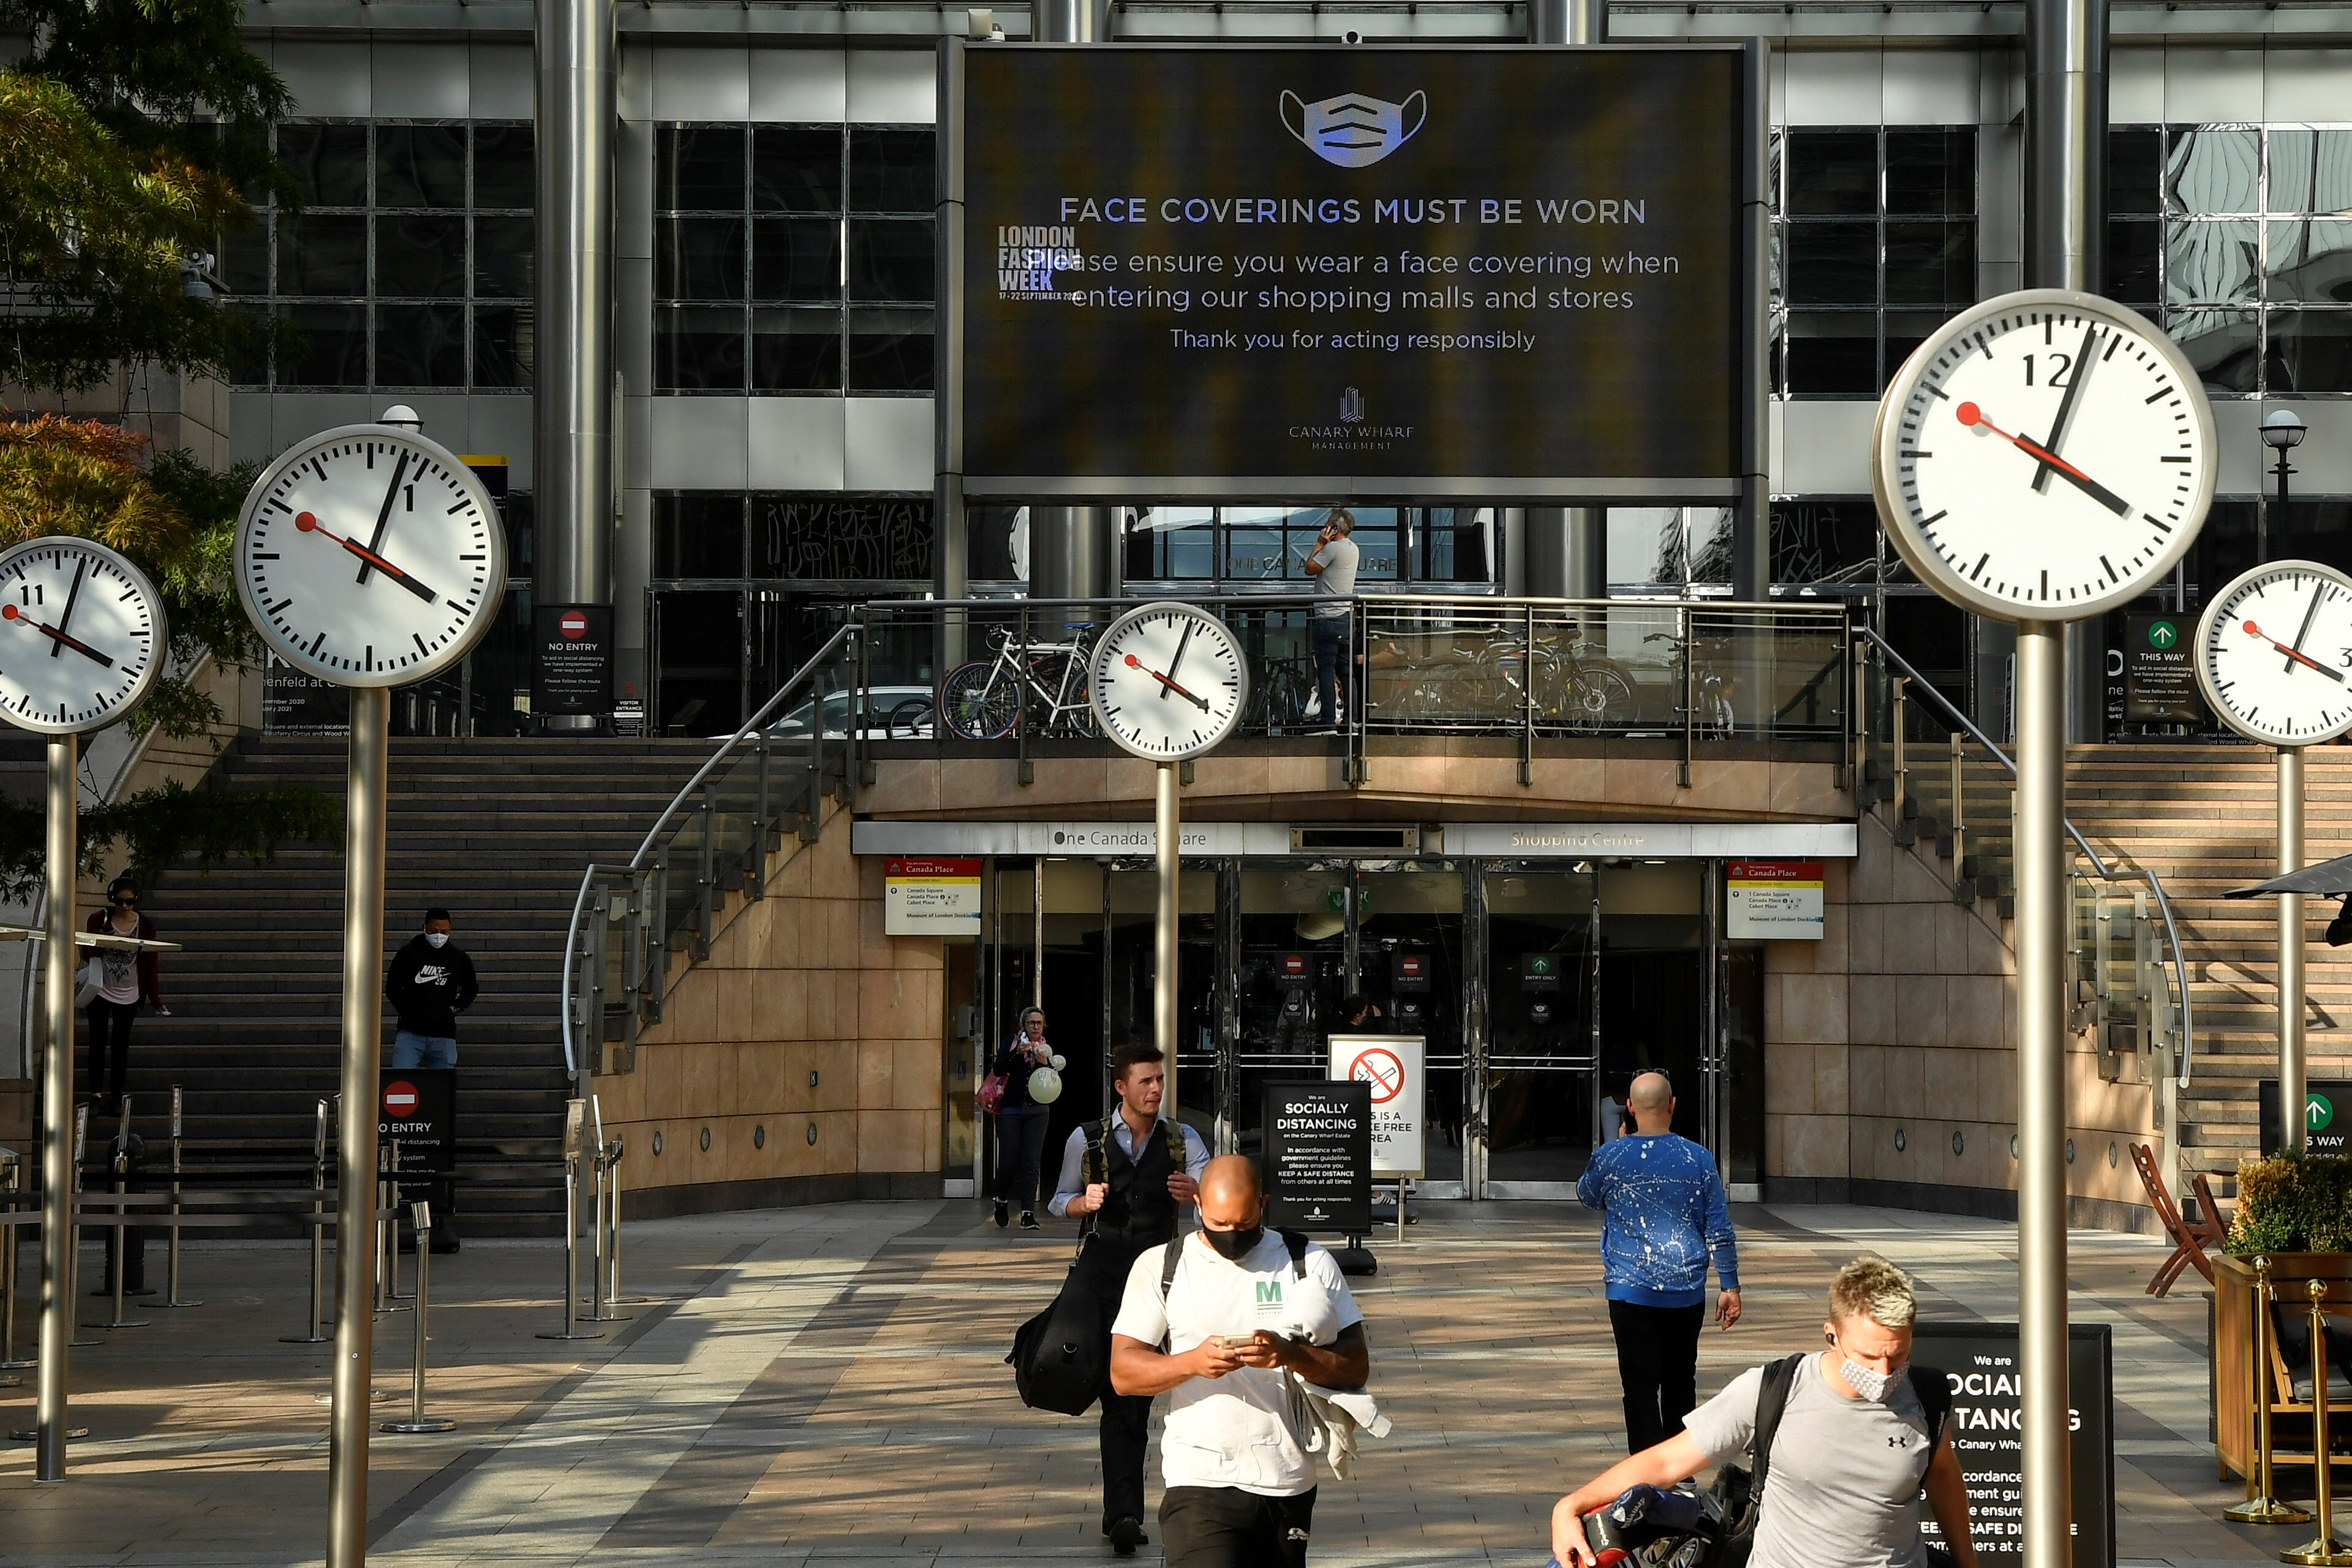 People walk in the Canary Wharf business district, amid the coronavirus disease (COVID-19) outbreak, in London, Britain, September 22, 2020. REUTERS/Toby Melville/File photo